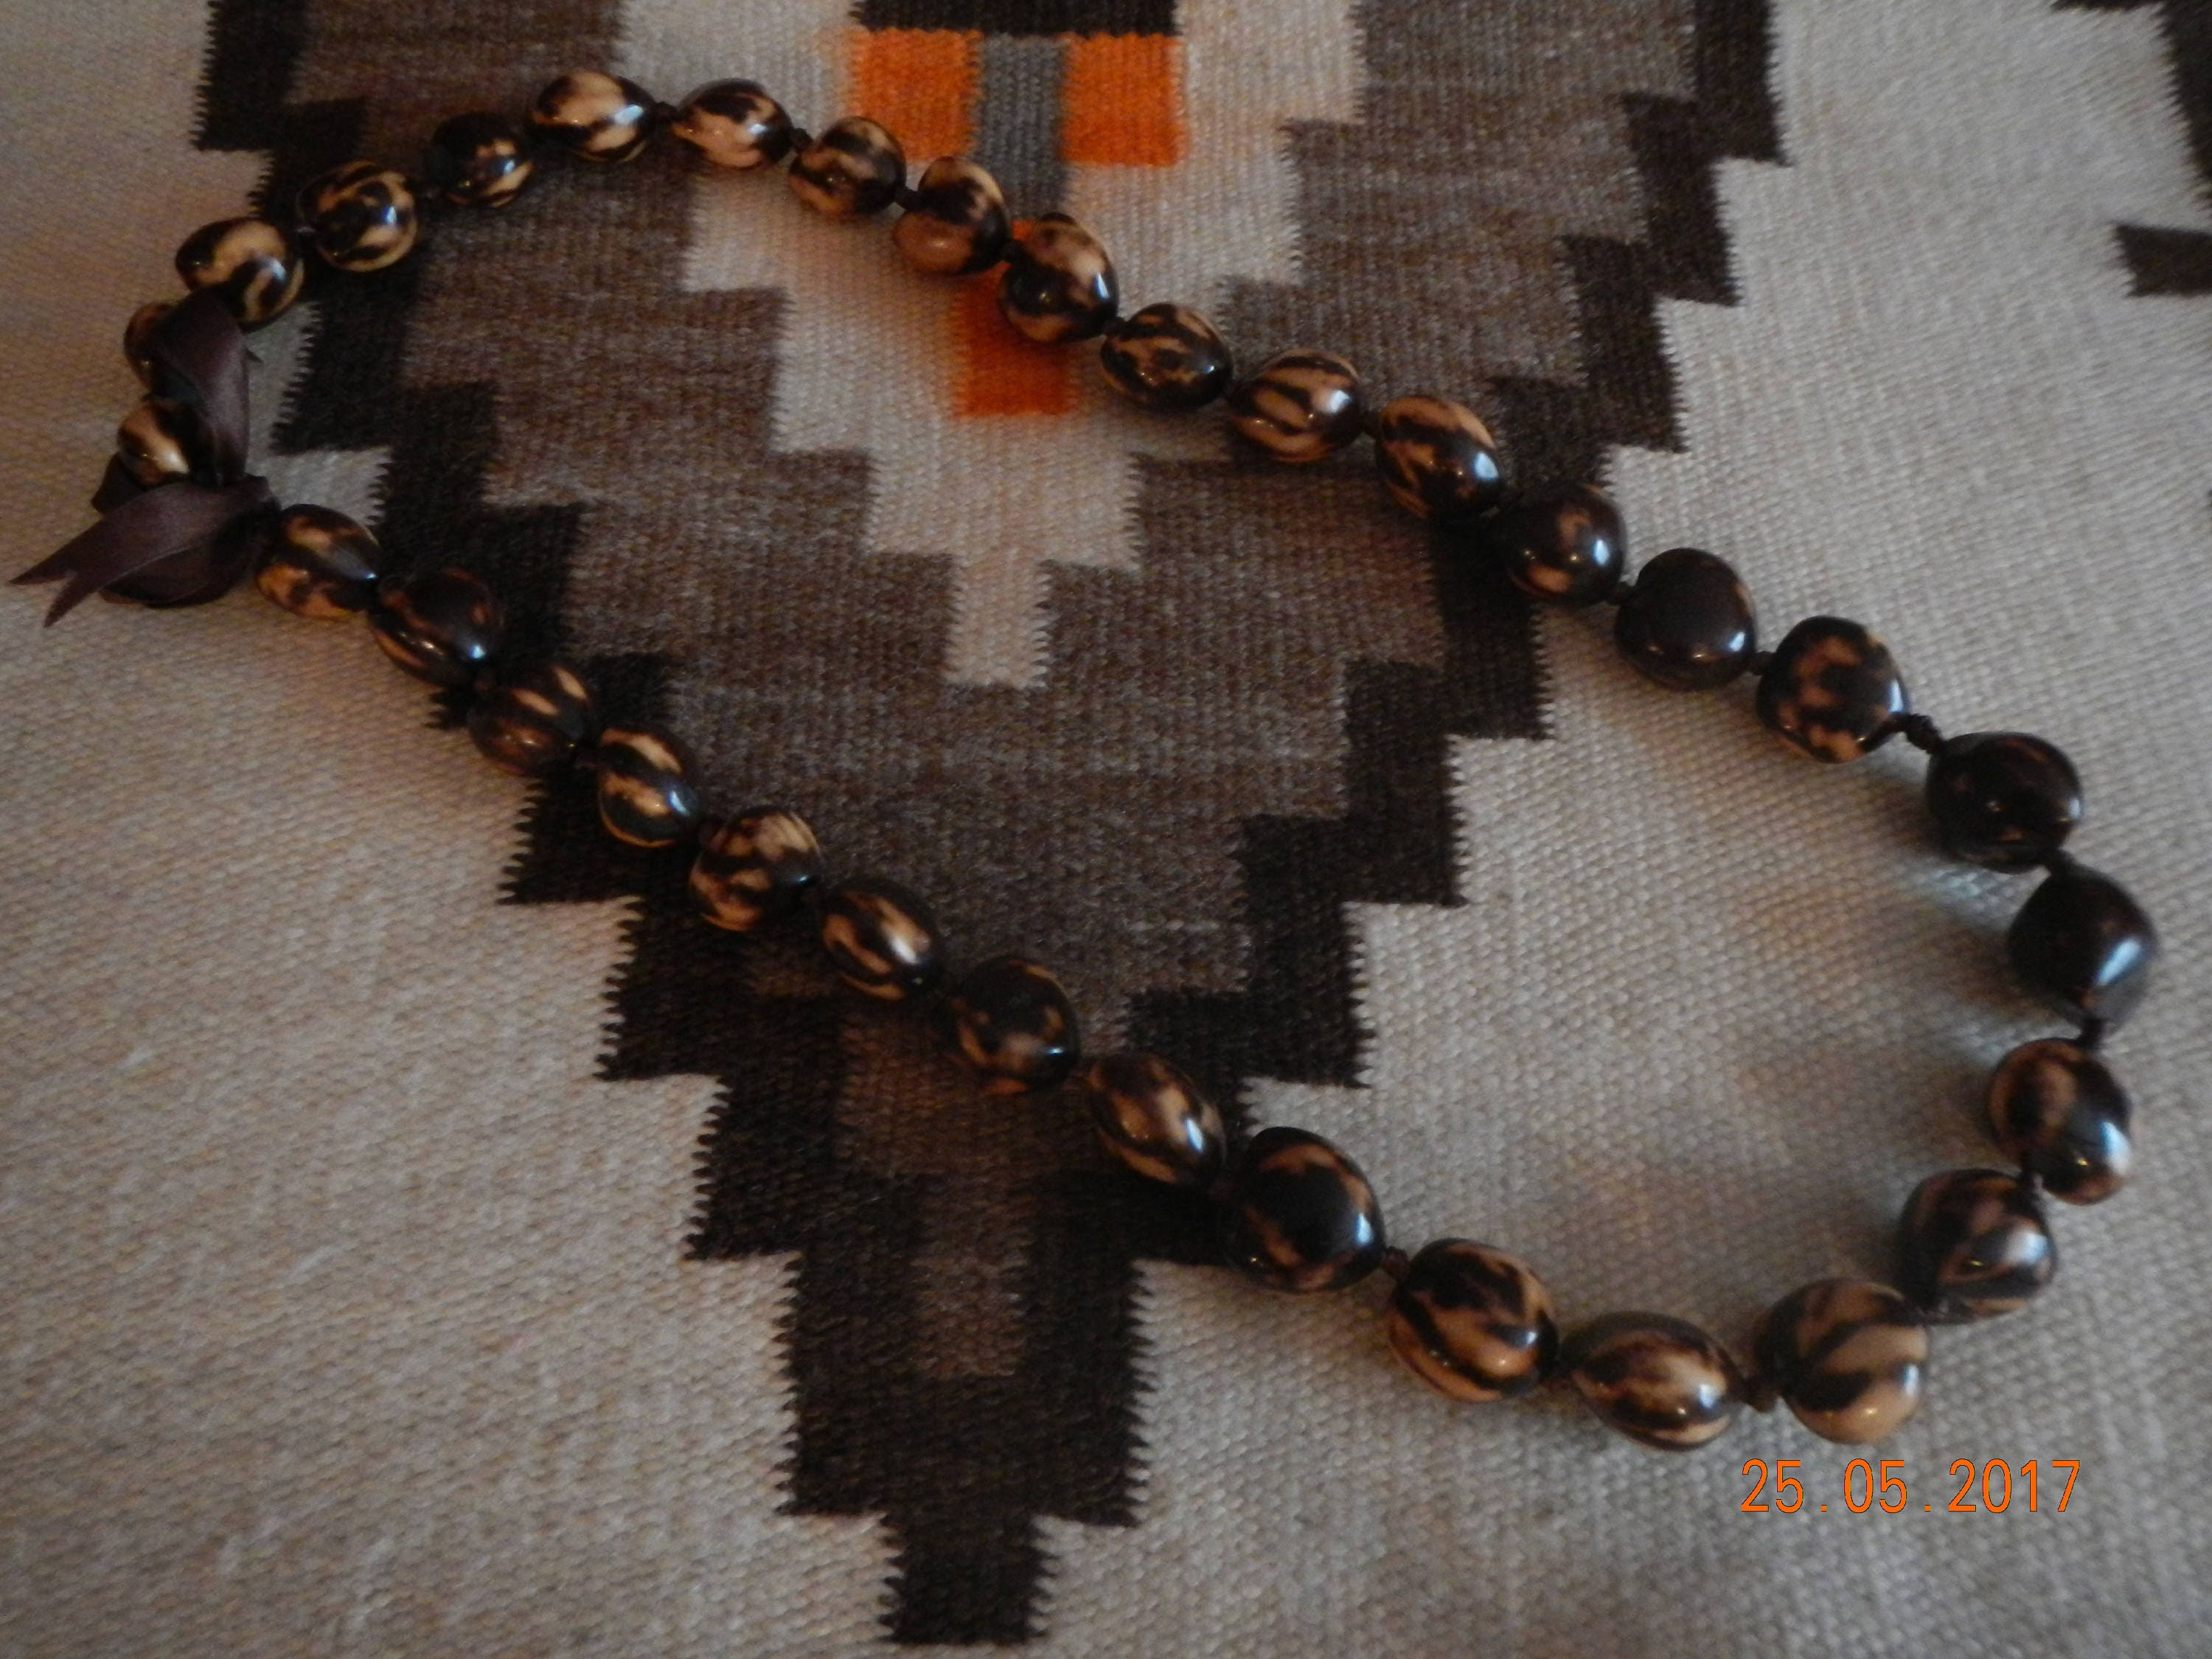 necklace fmf official products nut neckalce de porra la black mexico kukui sample